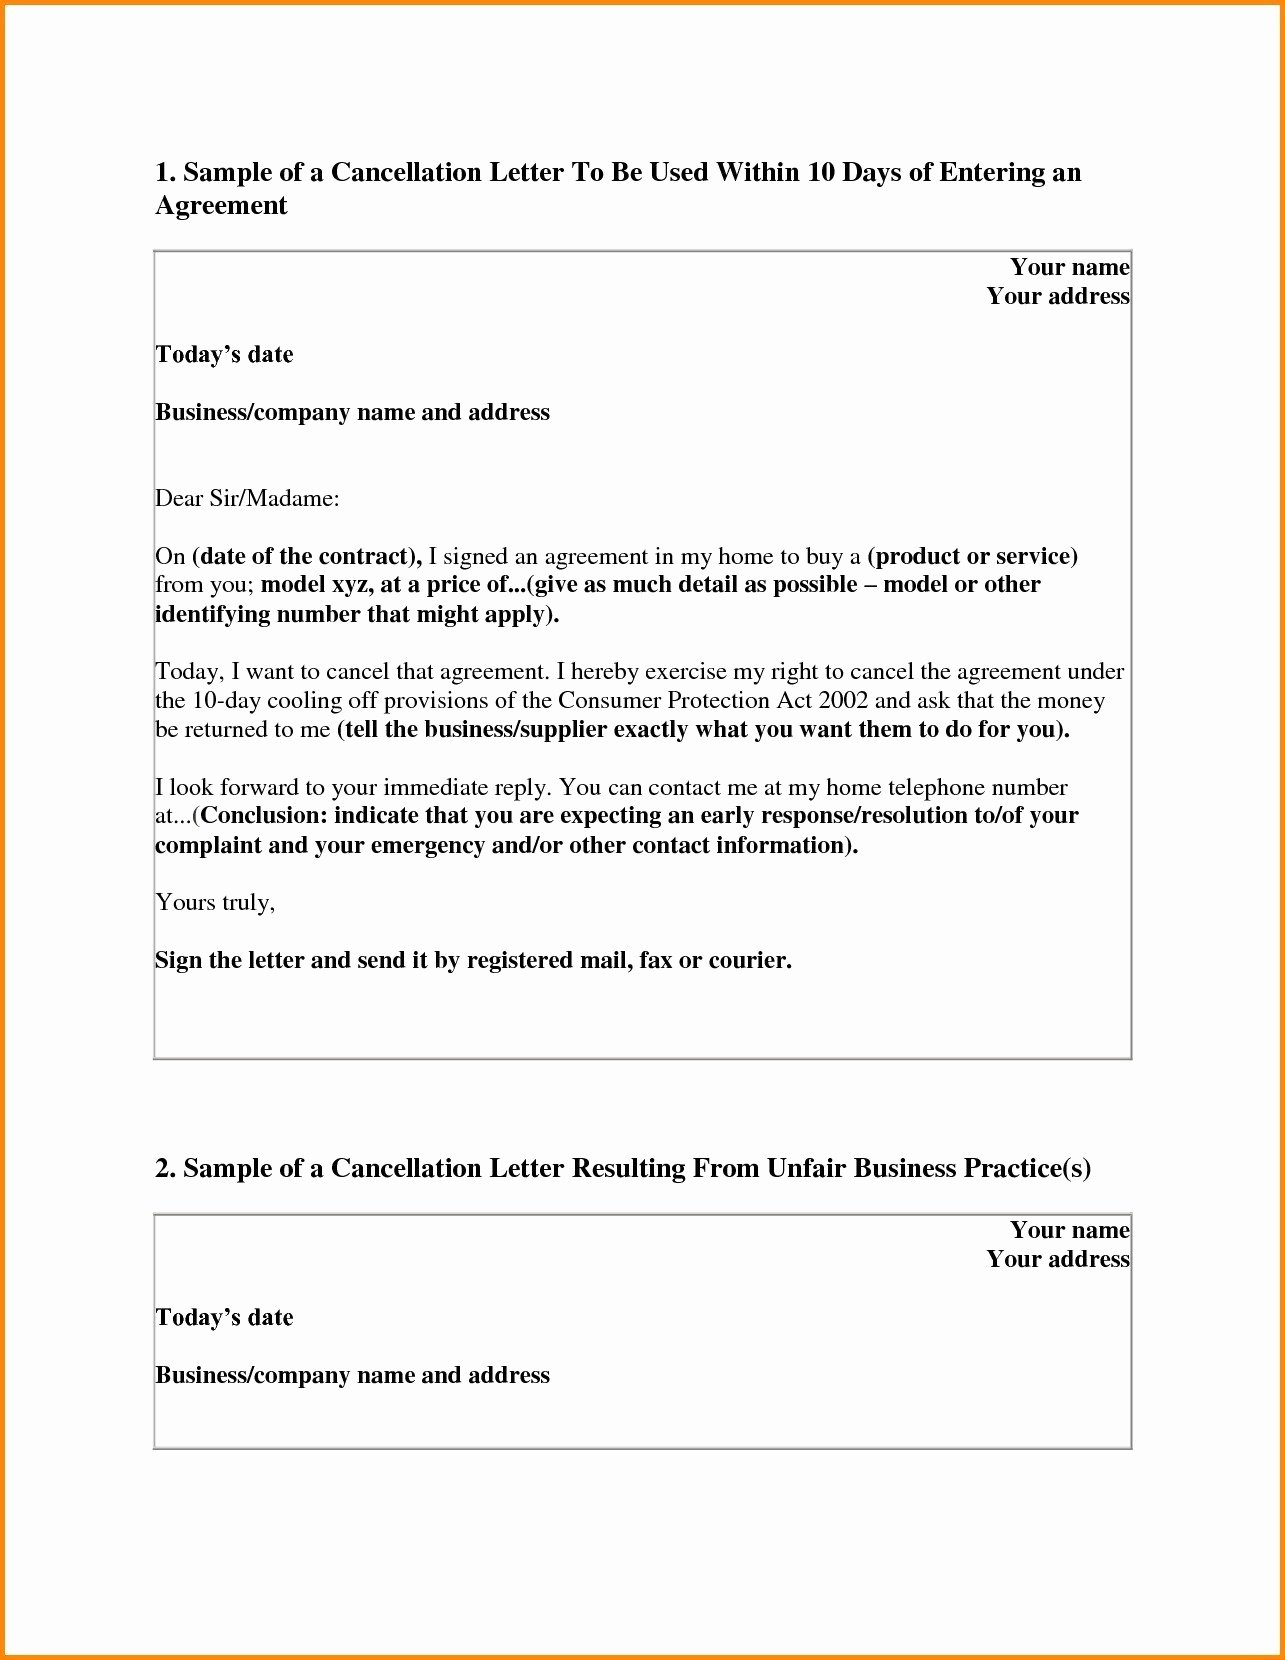 Timeshare Rescission Letter Sample Fresh Timeshare Cancellation Letter Template Samples